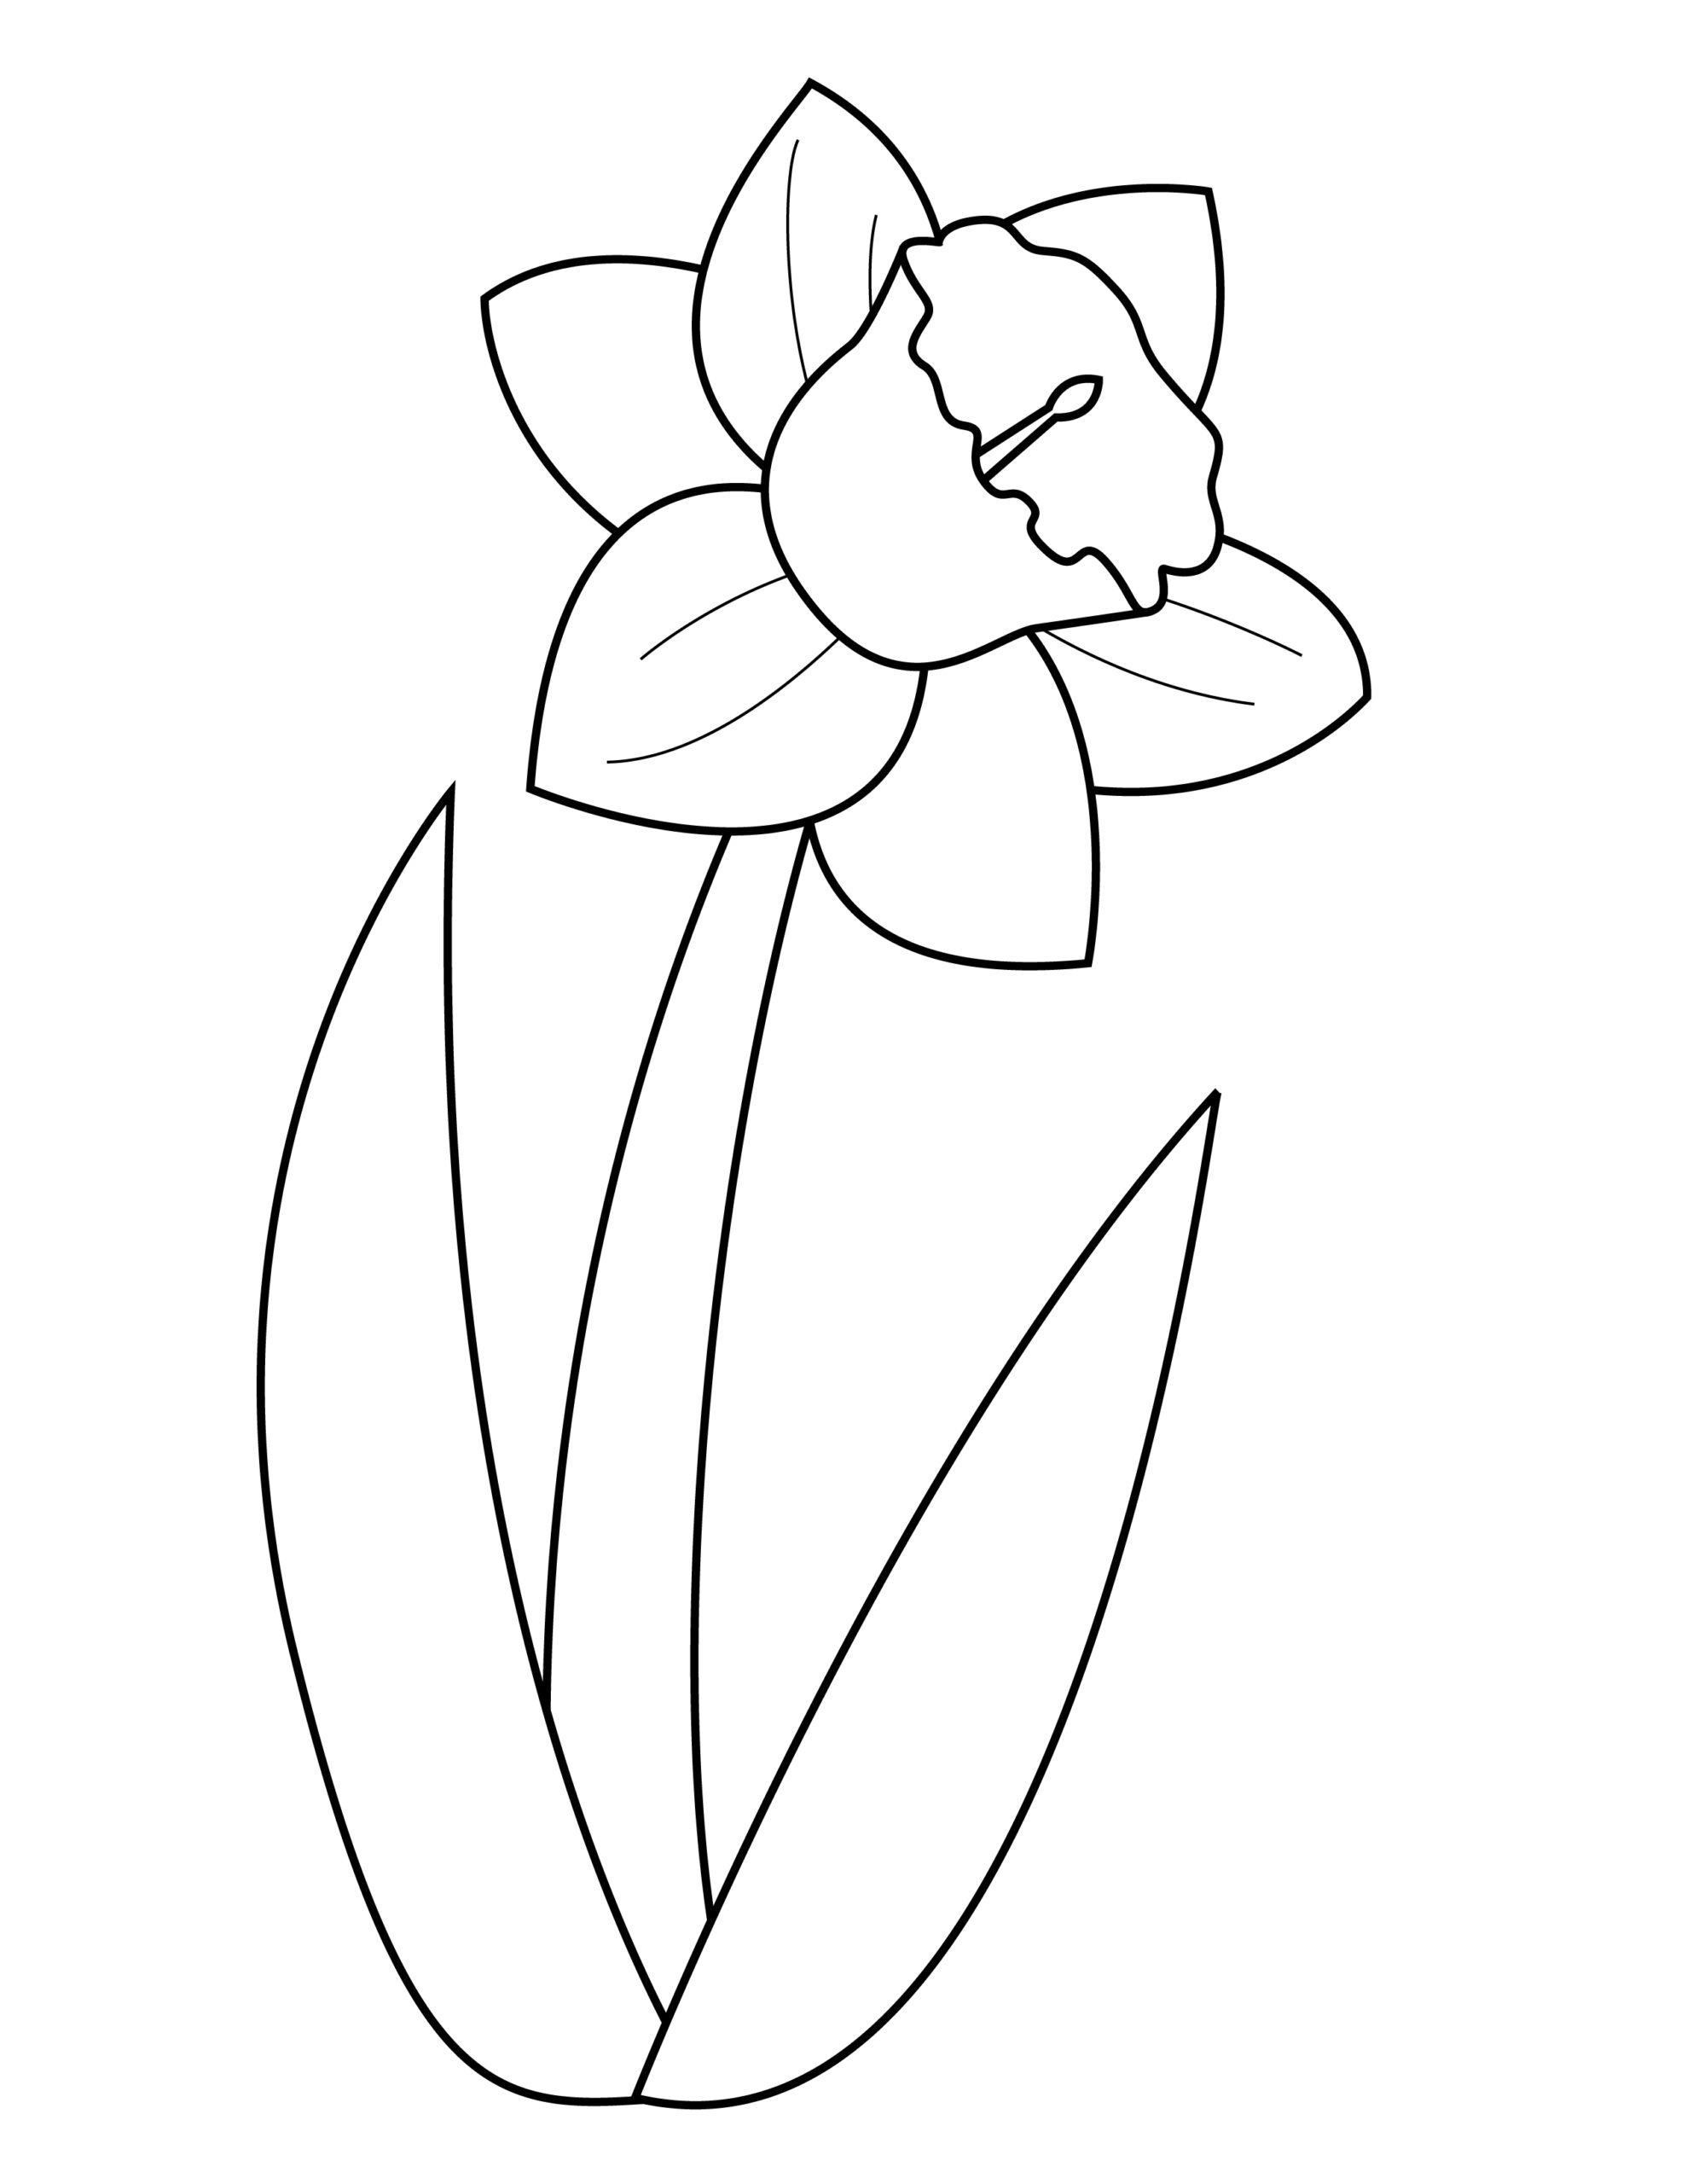 Printable daffodil template for summer template crafts for kids, preschoolers and toddlers